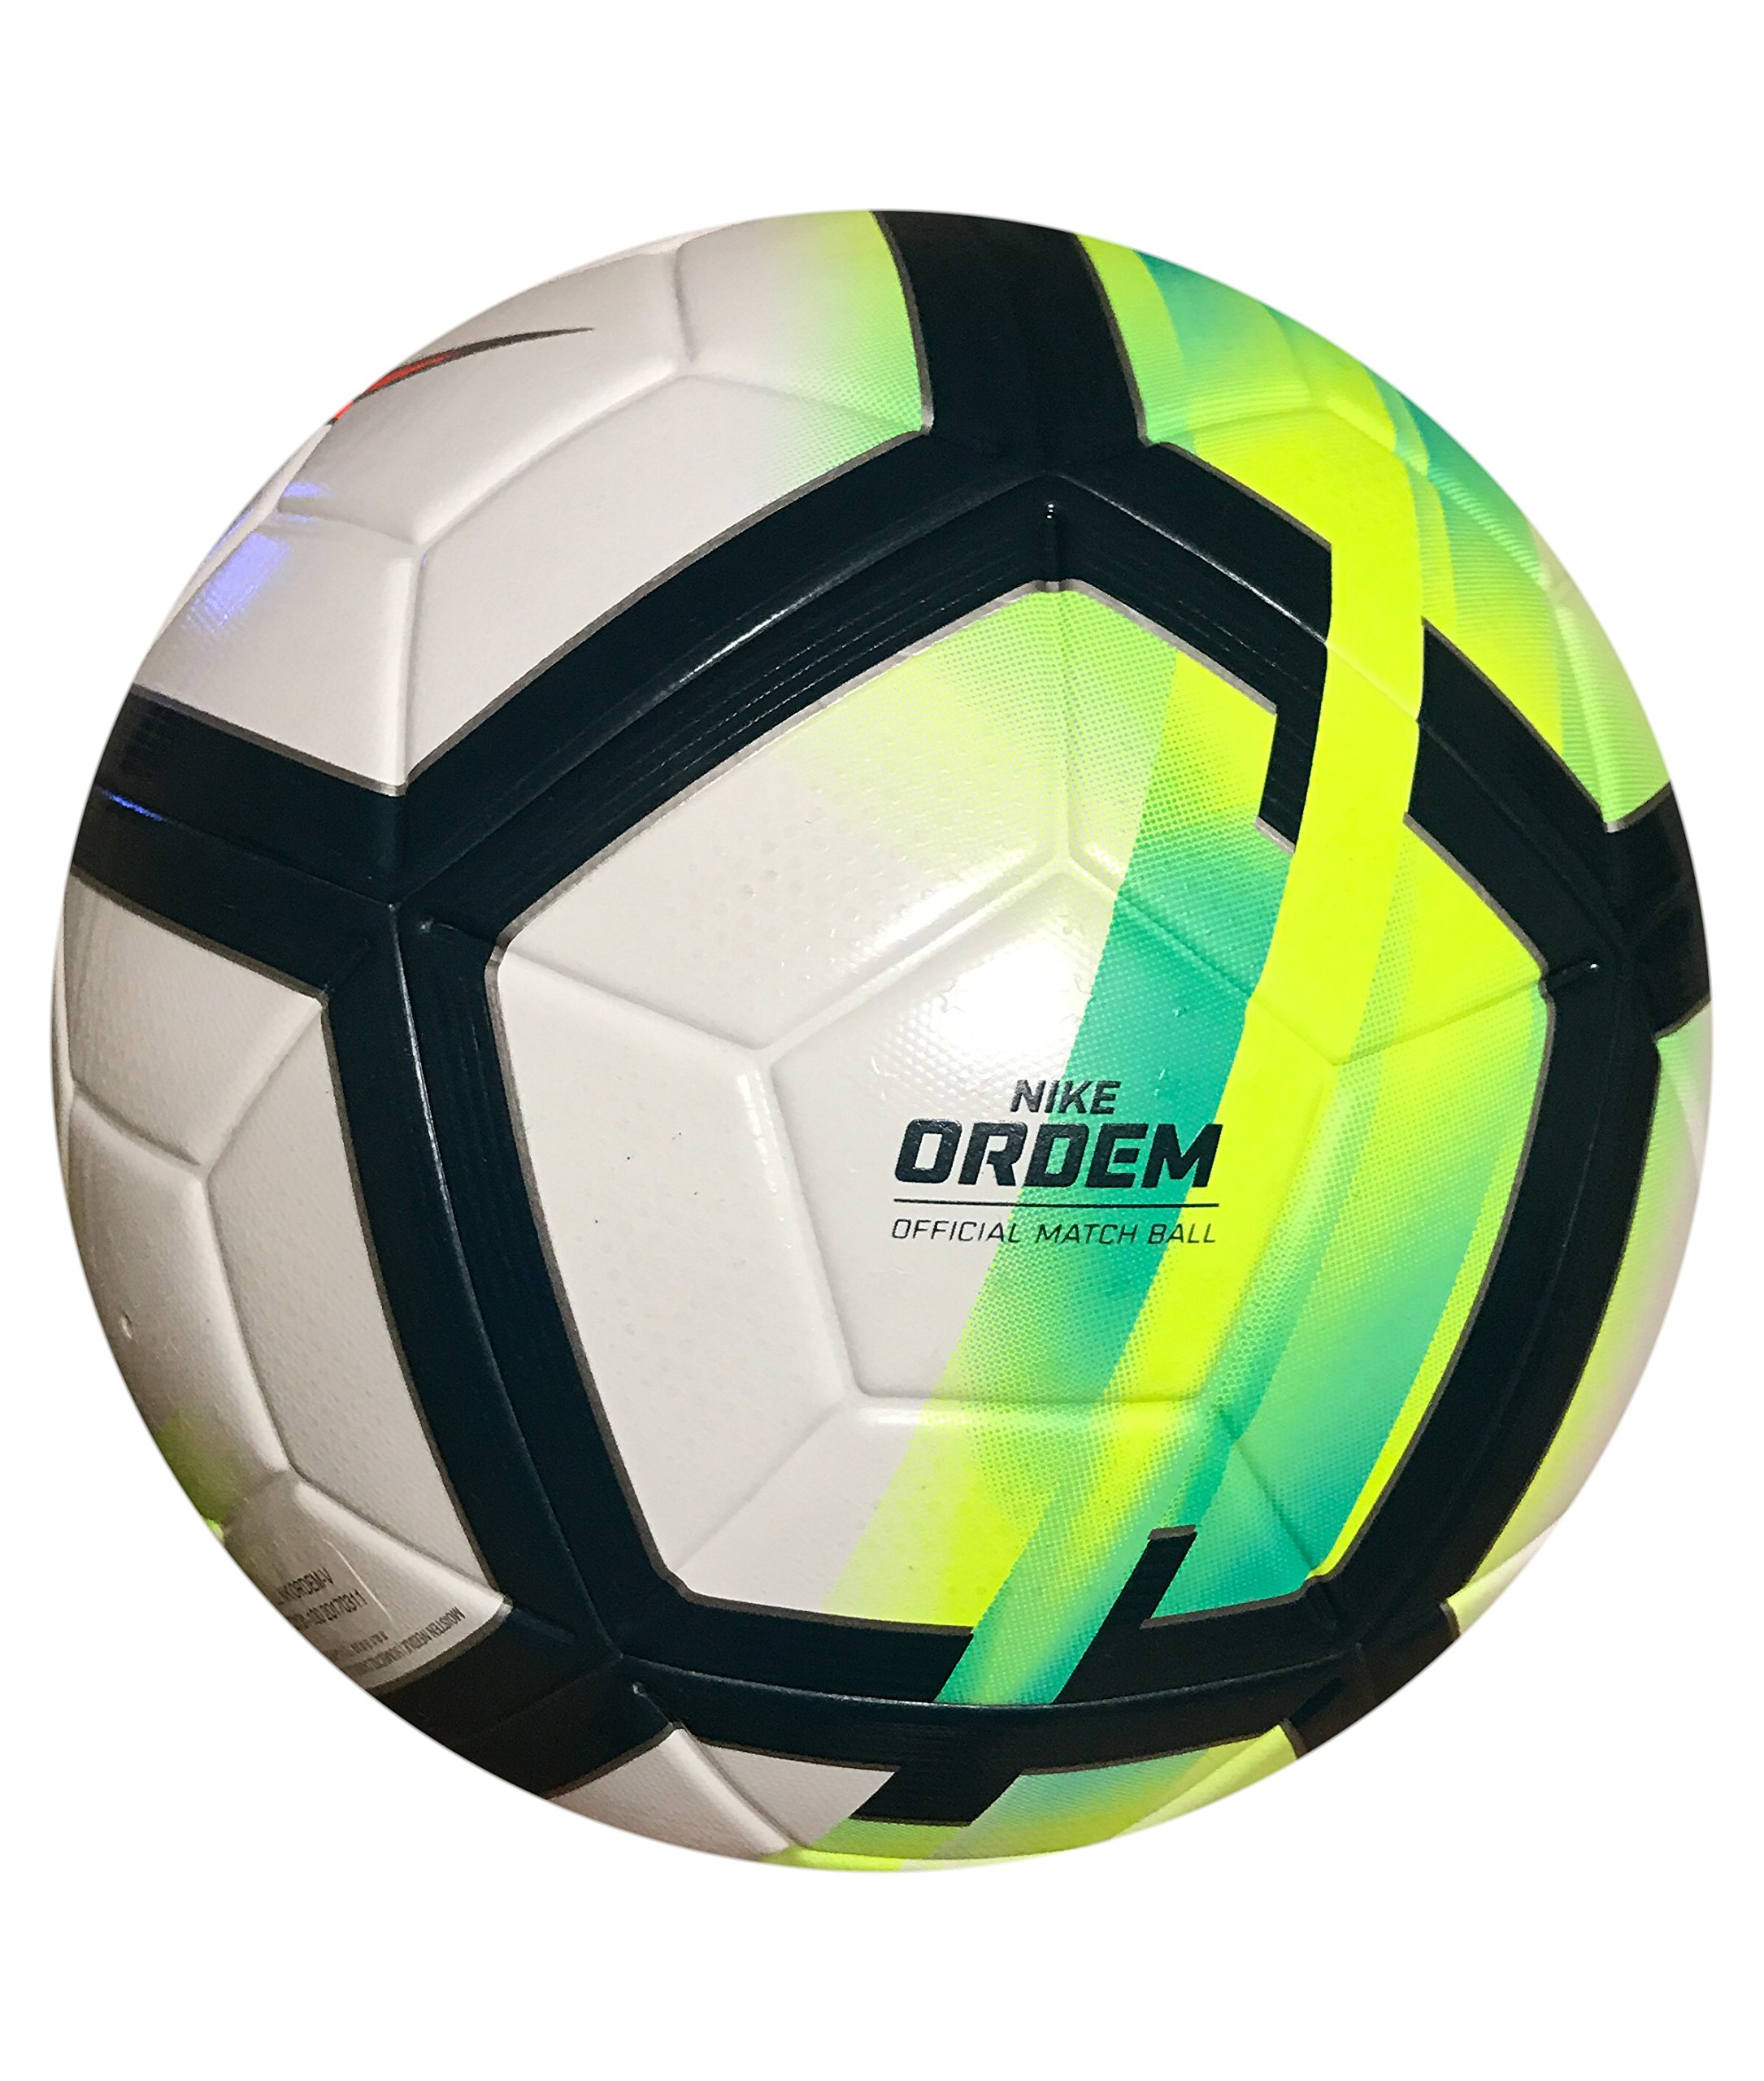 Nike Ordem V Soccer Ball - La Liga 17/18 Official Match Ball White/Turquoise/Seaweed/Total Orange